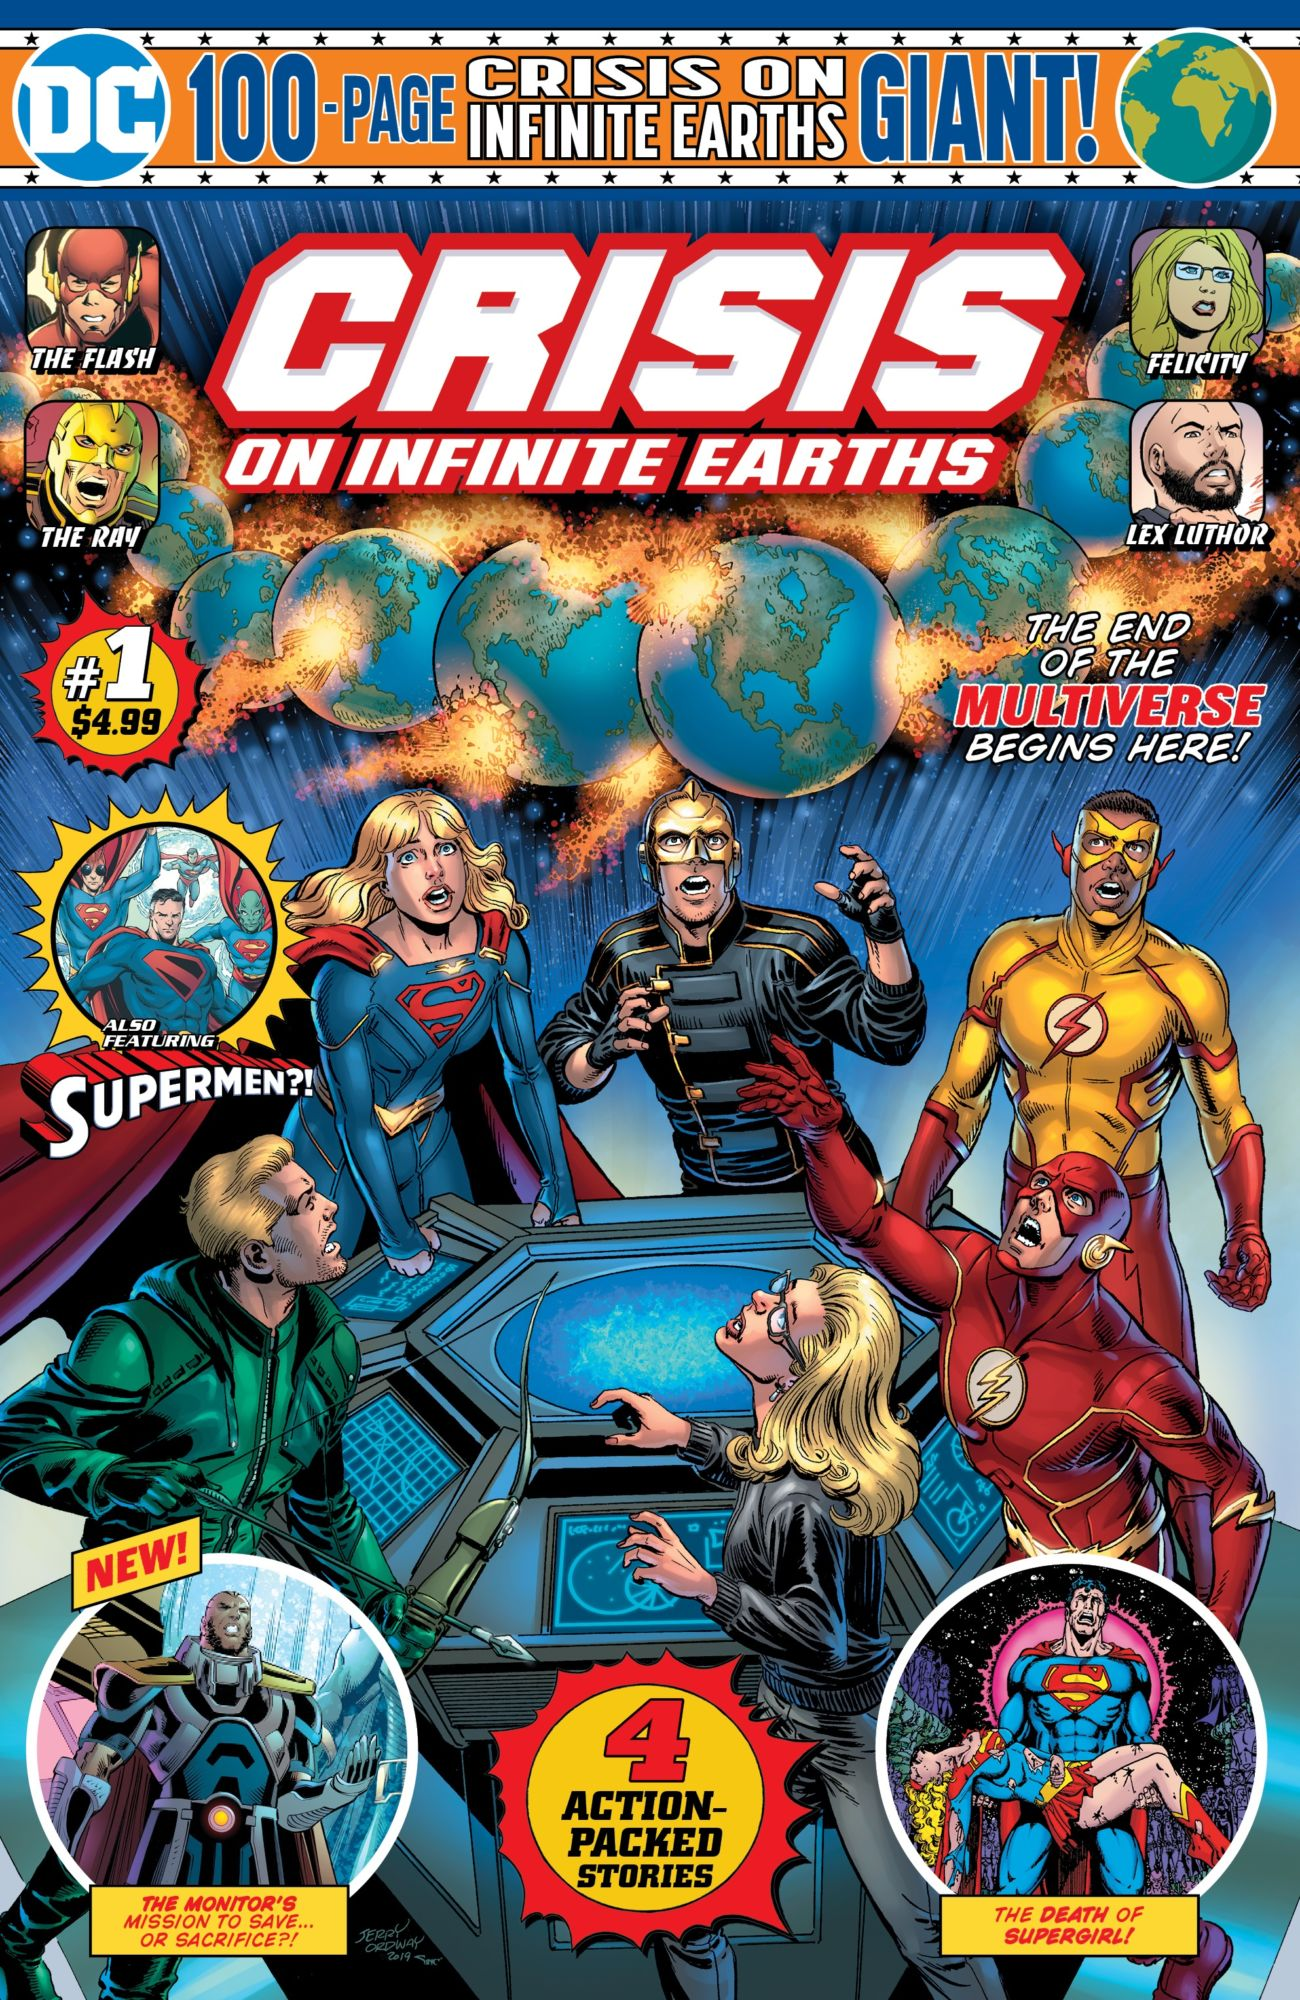 Crisis On Infinite Earths Giant #1 – Good Read, Great Easter Eggs, Horrible Crisis Management, Bad Arrowverse Tie-In (SPOILERS)